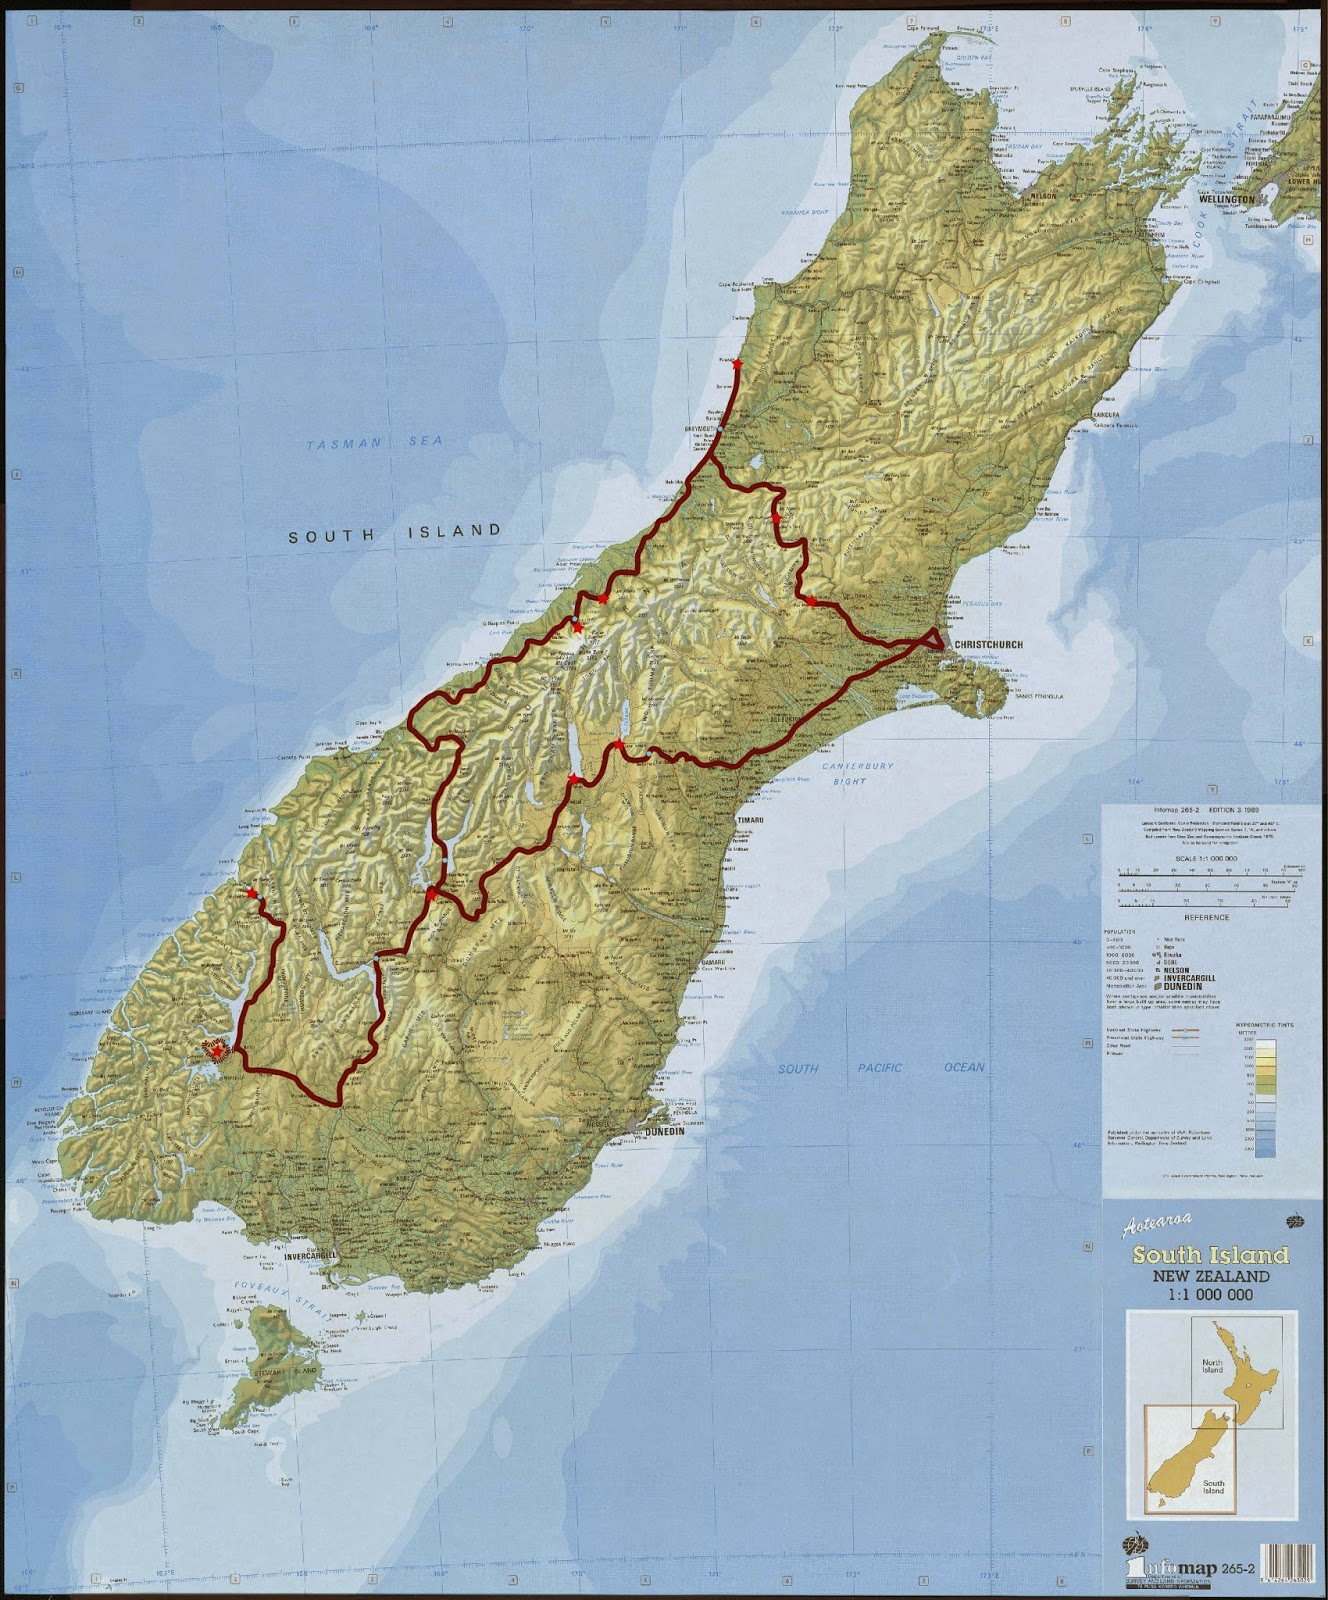 Show Me A Map Of New Zealand.Lakewood S Wanderings And Scribbles A Fun Little Escapade To